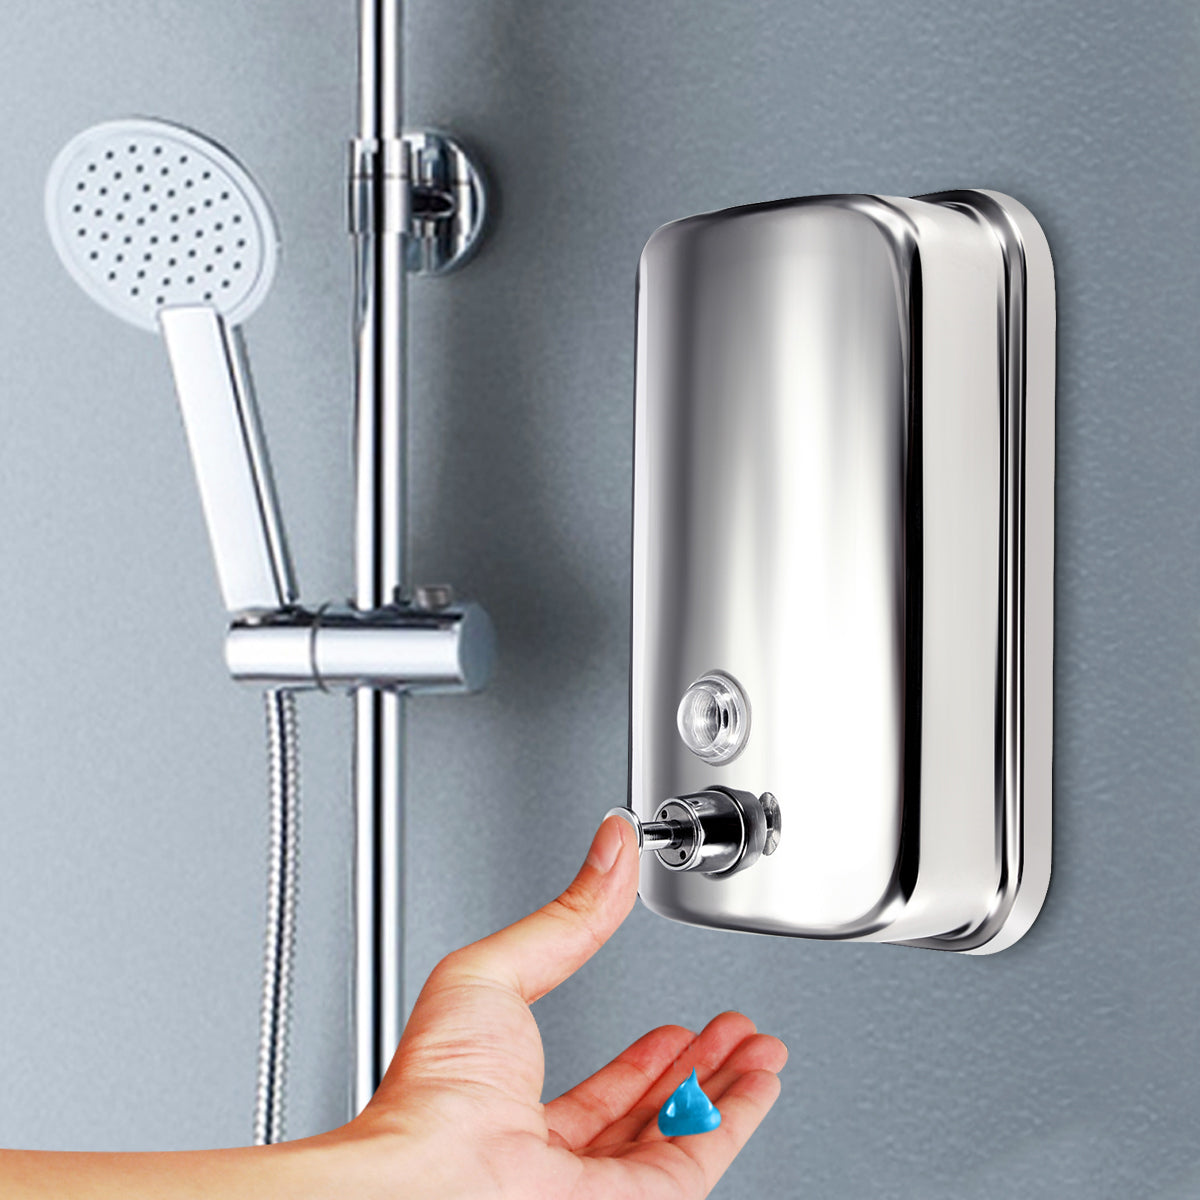 500/800/1000ml Stainless Steel Wall-mounted Liquid Soap Dispenser Shower Body Wash Shampoo Hand Sanitizer Dispenser Box for Hotel Batehroom Kitchen